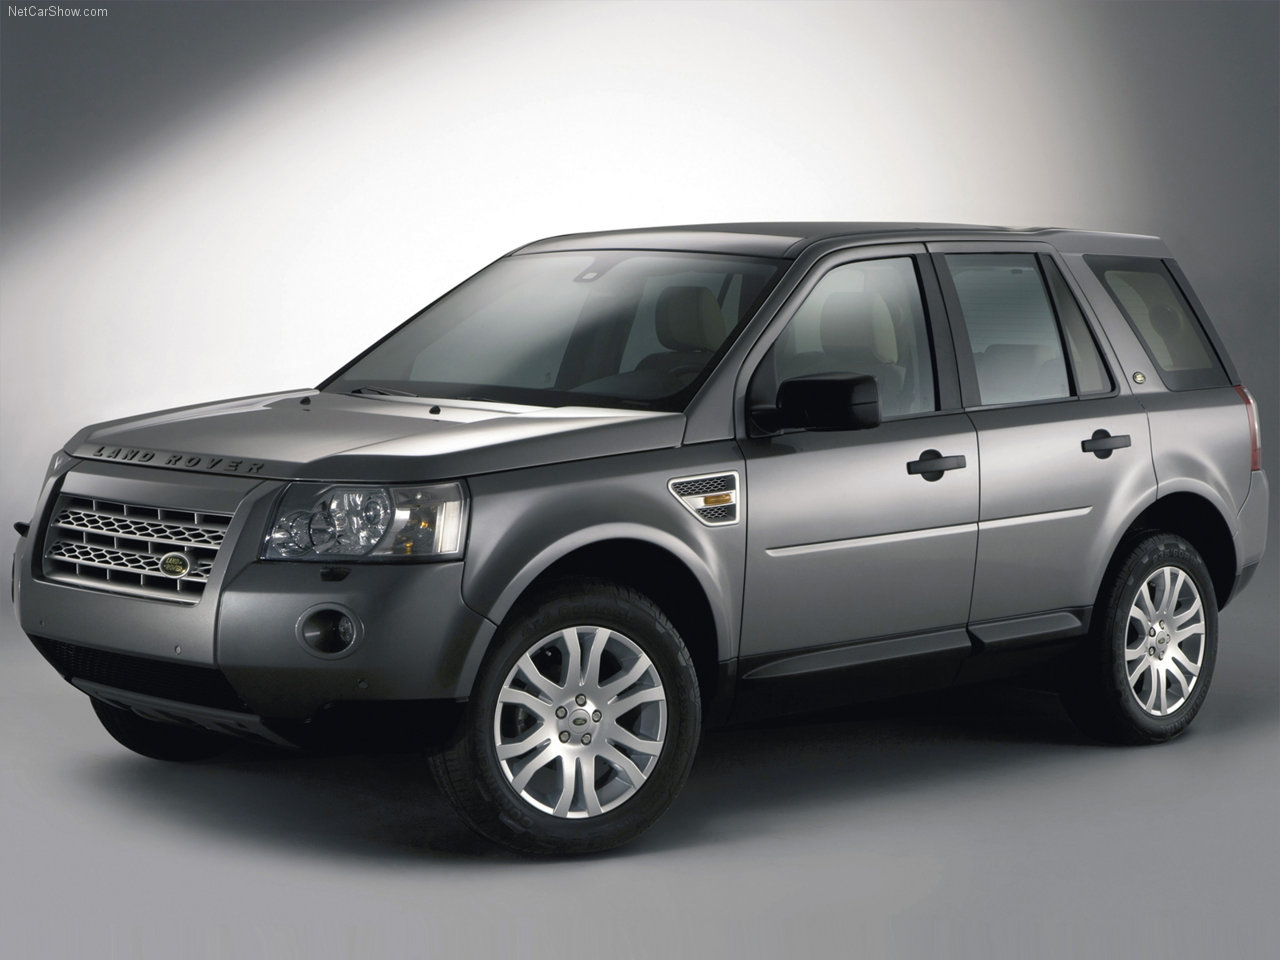 land rover wallpapers download free 2007 land rover freelander 2 7 wallpapers photos. Black Bedroom Furniture Sets. Home Design Ideas